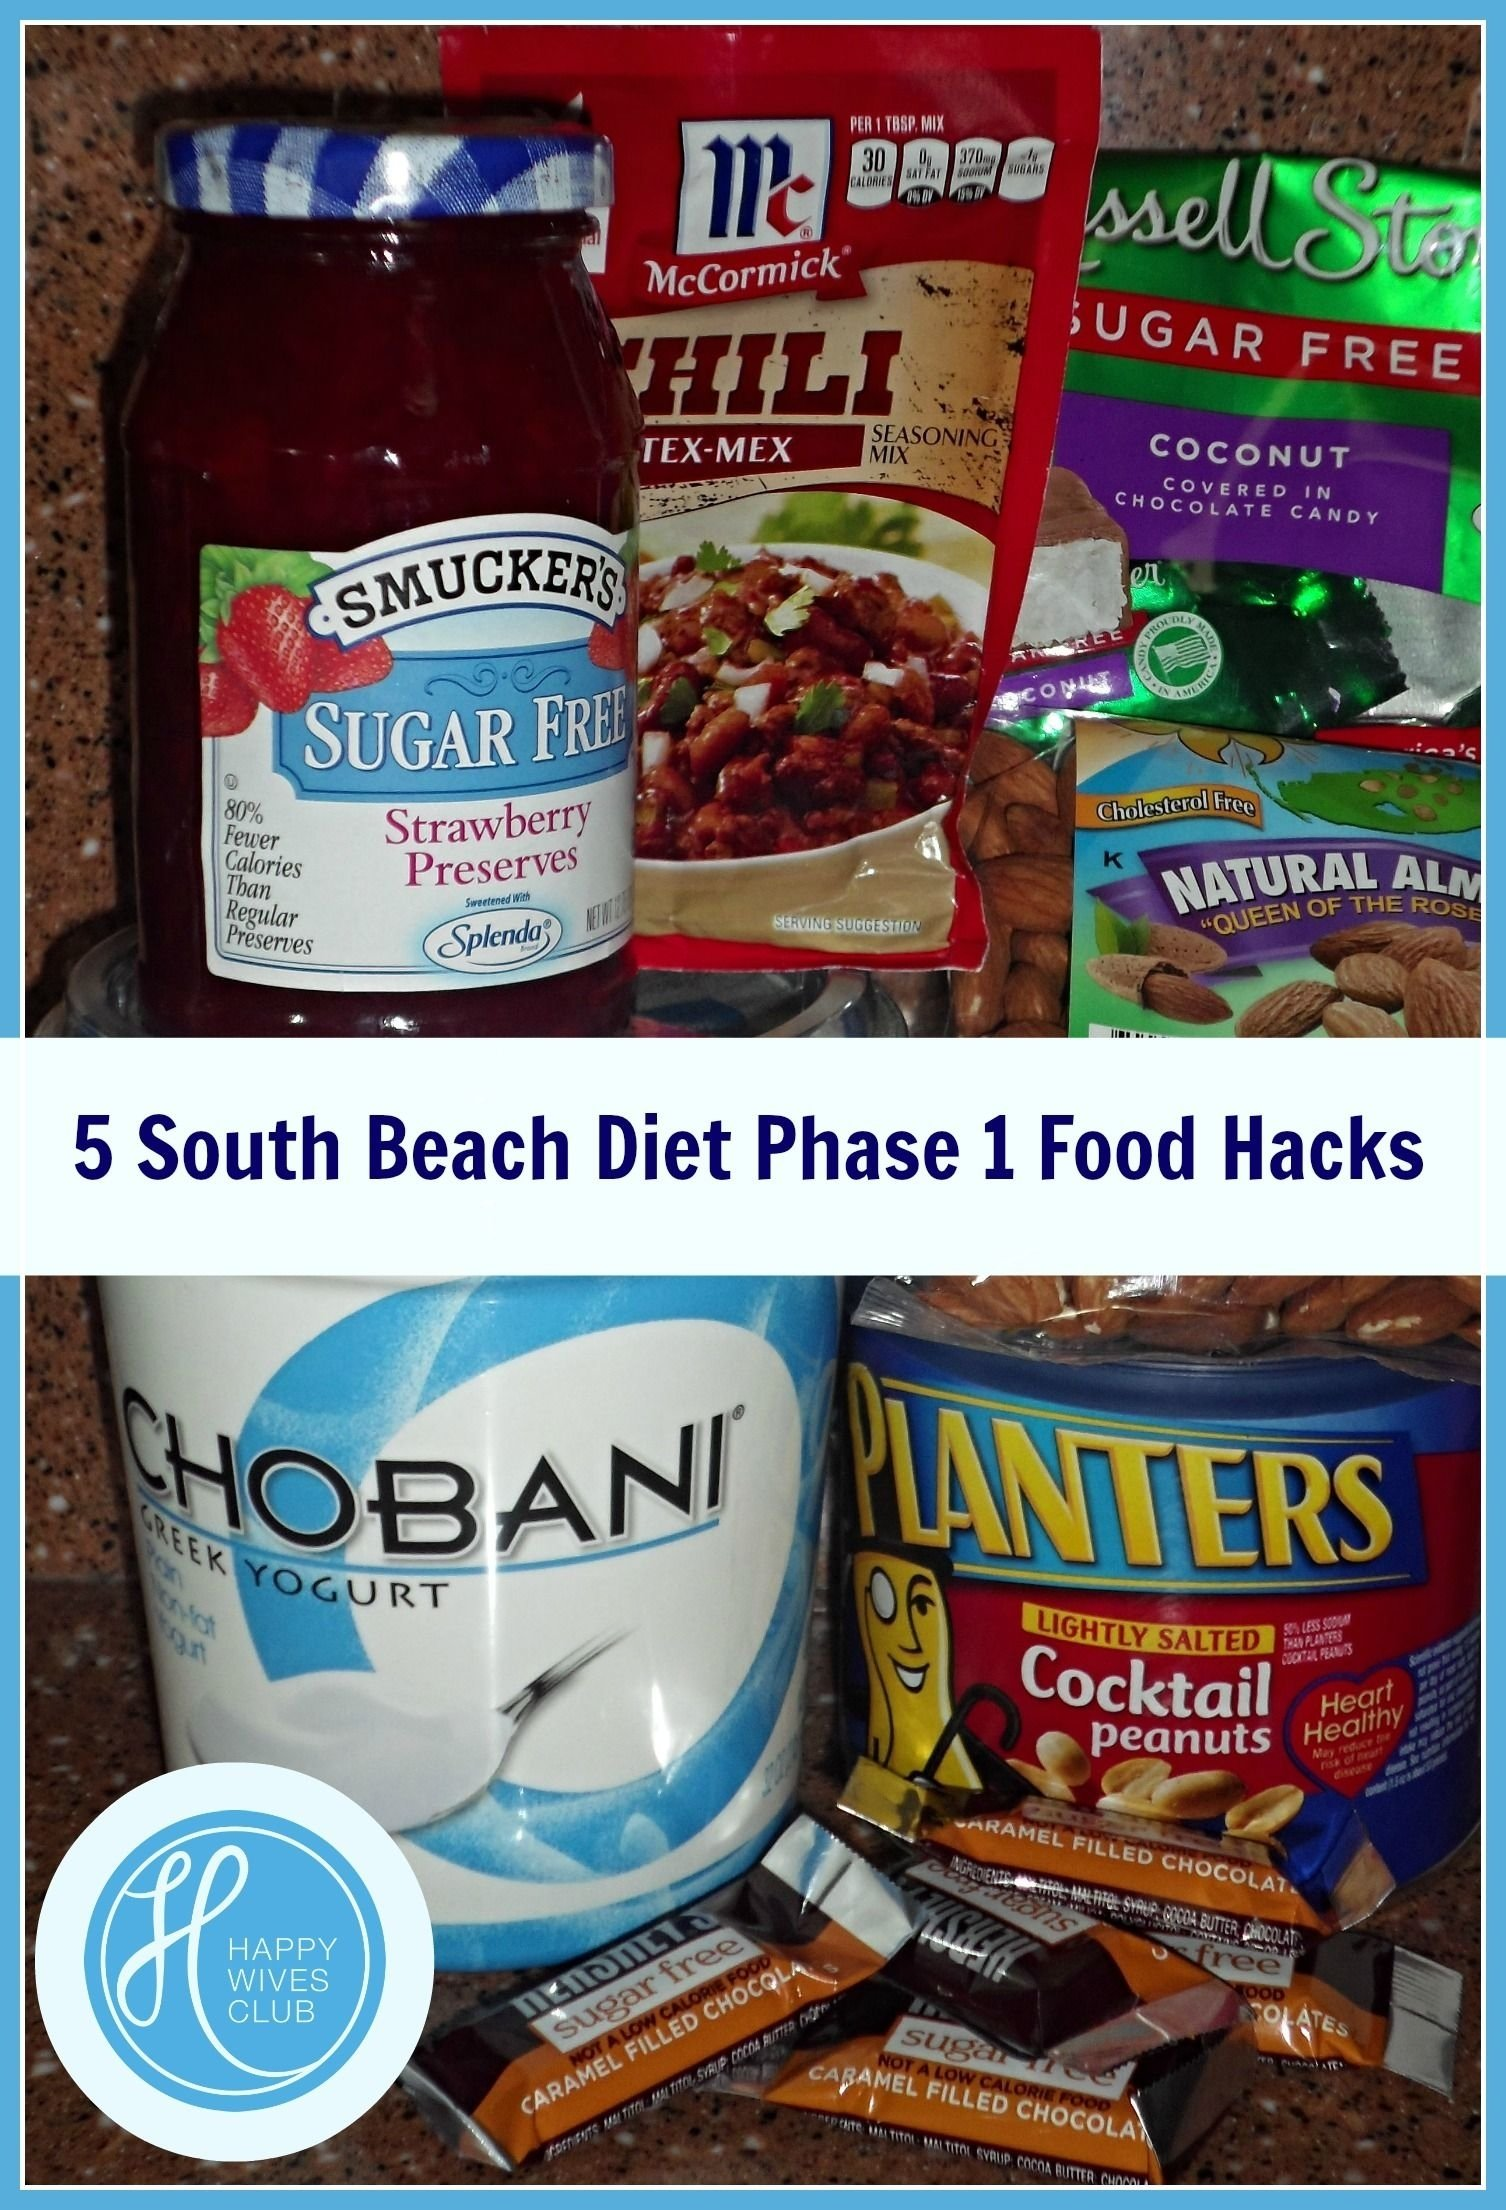 10 Nice South Beach Diet Breakfast Ideas 5 south beach diet phase 1 food hacks south beach diet yogurt and 2021